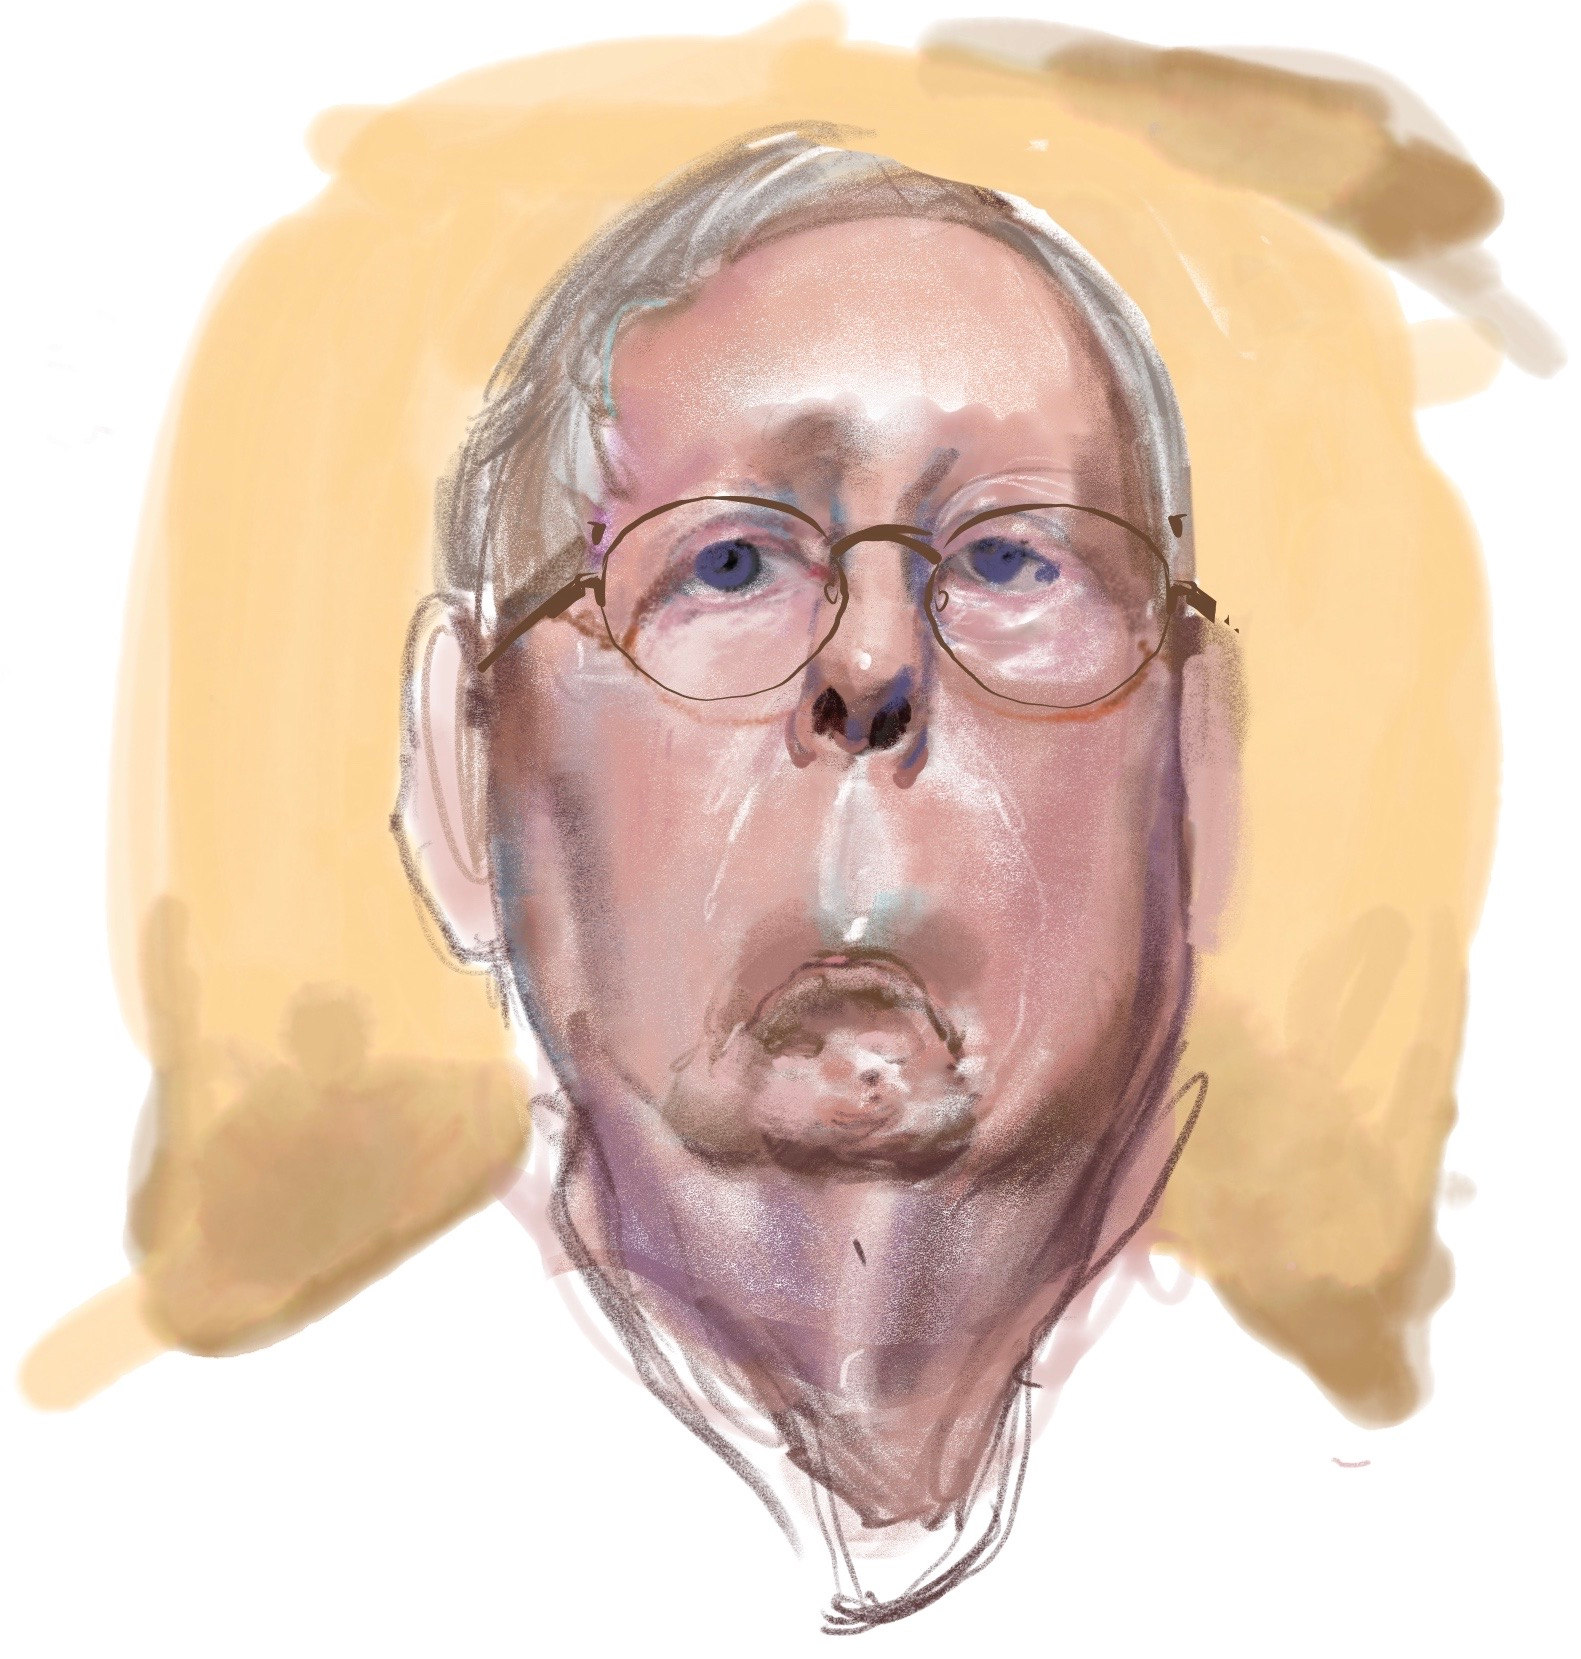 Mitch McConnel